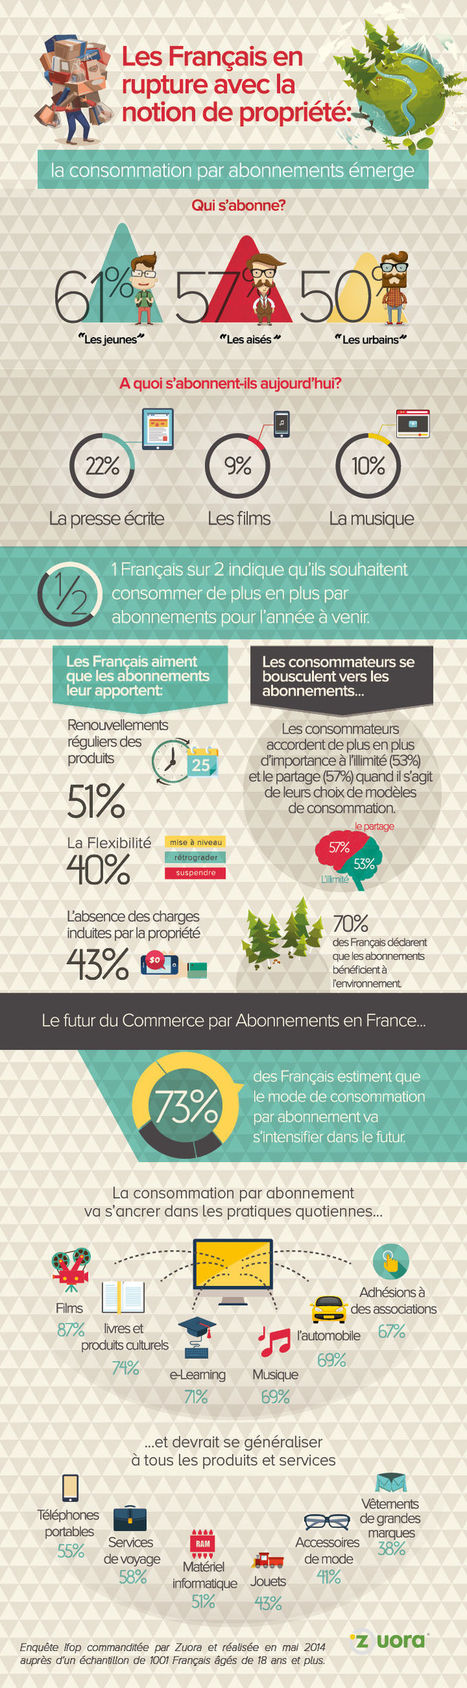 Infographie LSA: la révolution collaborative en chiffres | Le Zinc de Co | Scoop.it